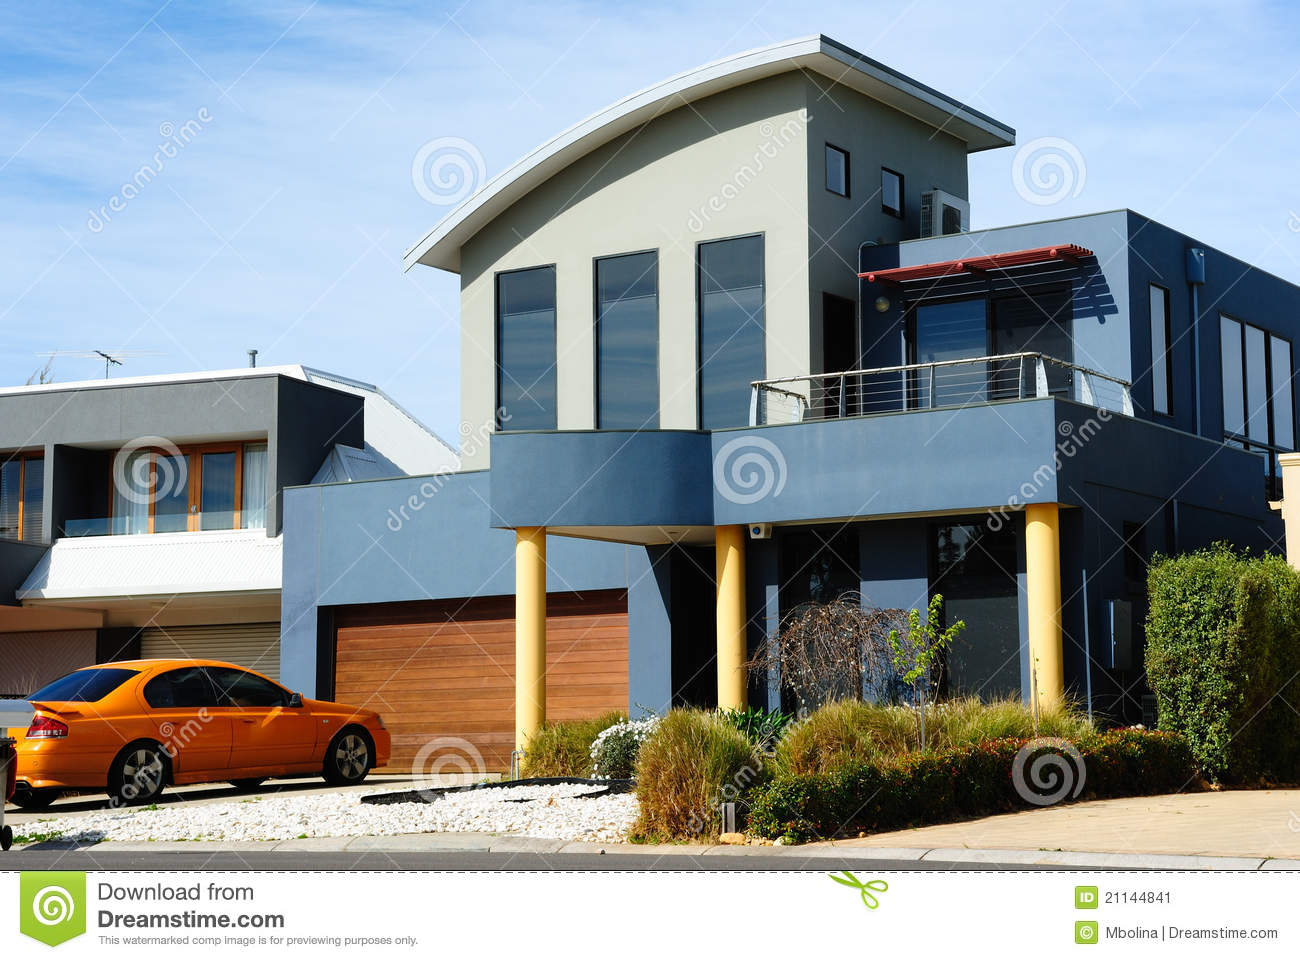 Belle maison moderne architecture neuve image stock for Architecture des maisons modernes